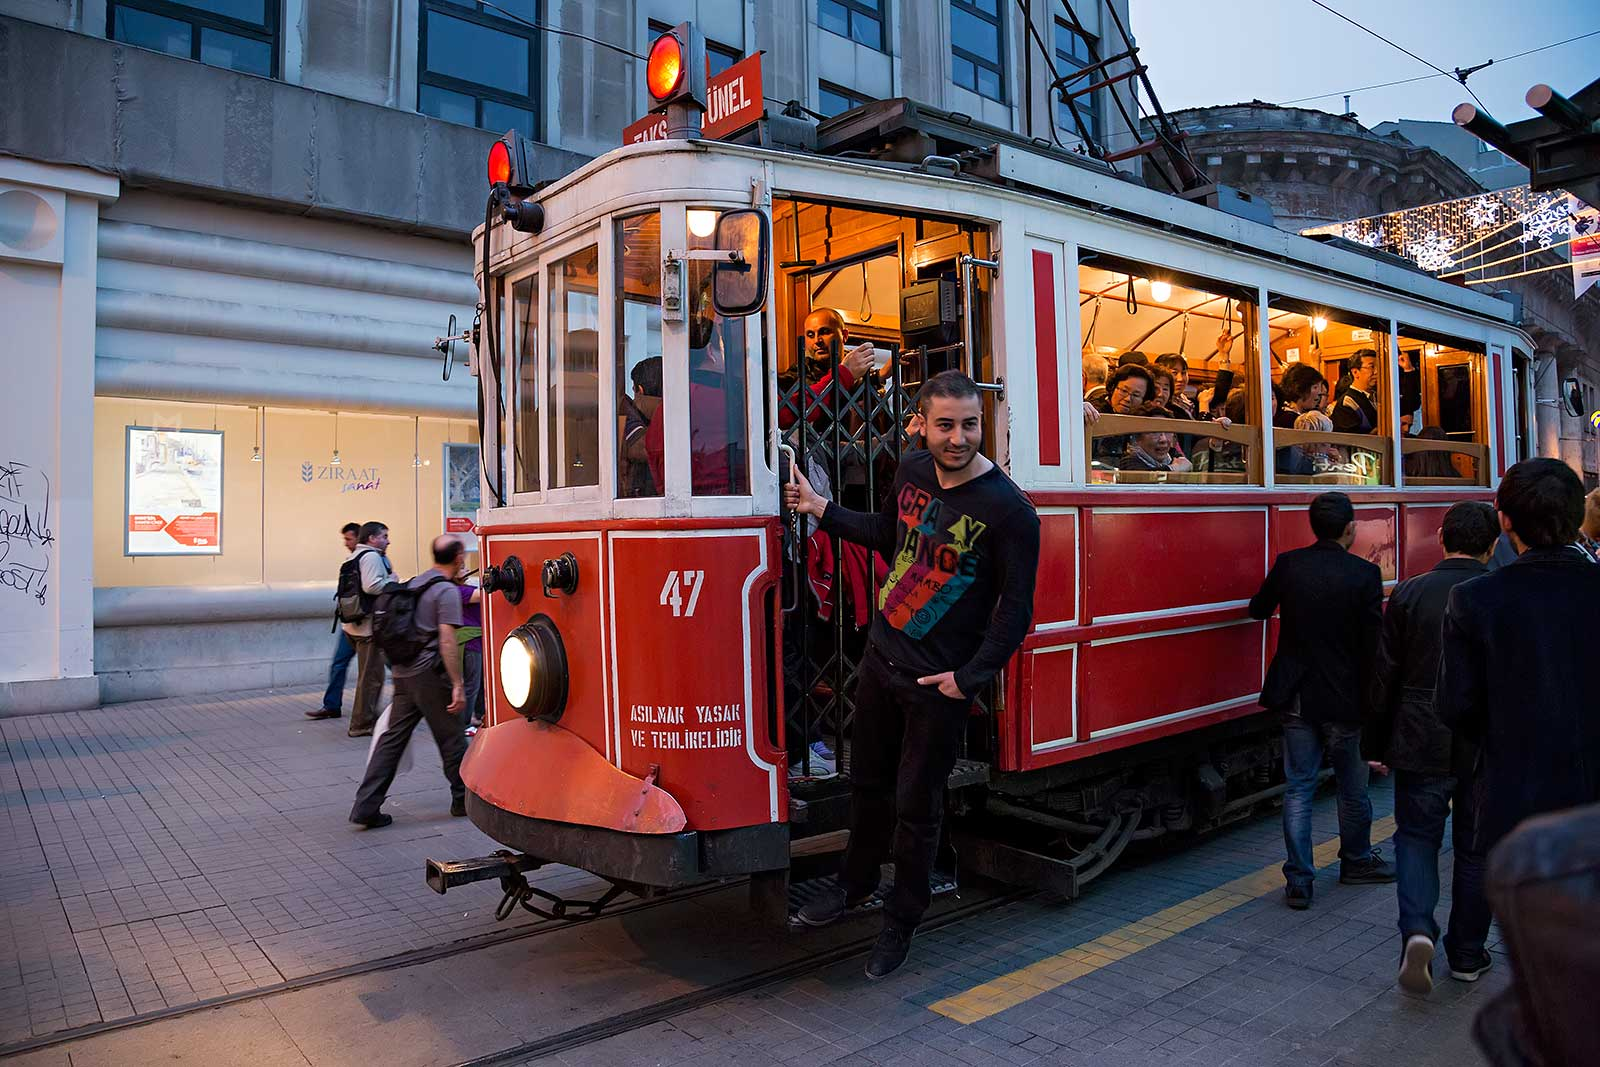 tram-way-shopping-street-istanbul-turkey